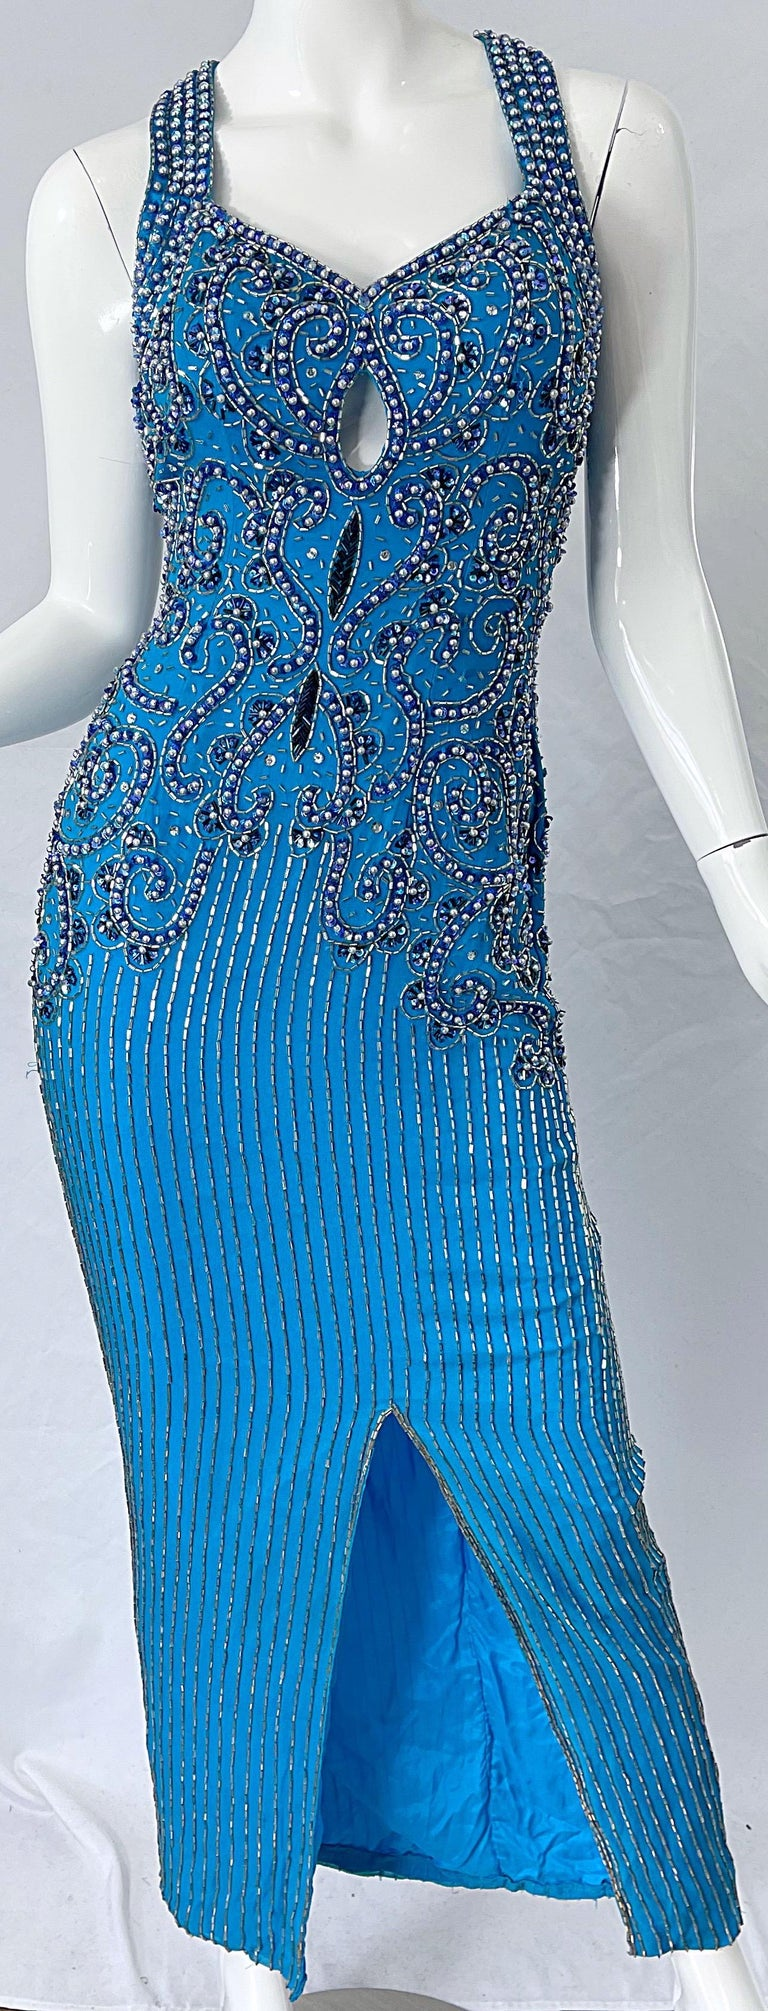 1980s Ted Lapidus Size 6 Turquoise Blue Silk Beaded Sequin Vintage 80s Gown For Sale 4